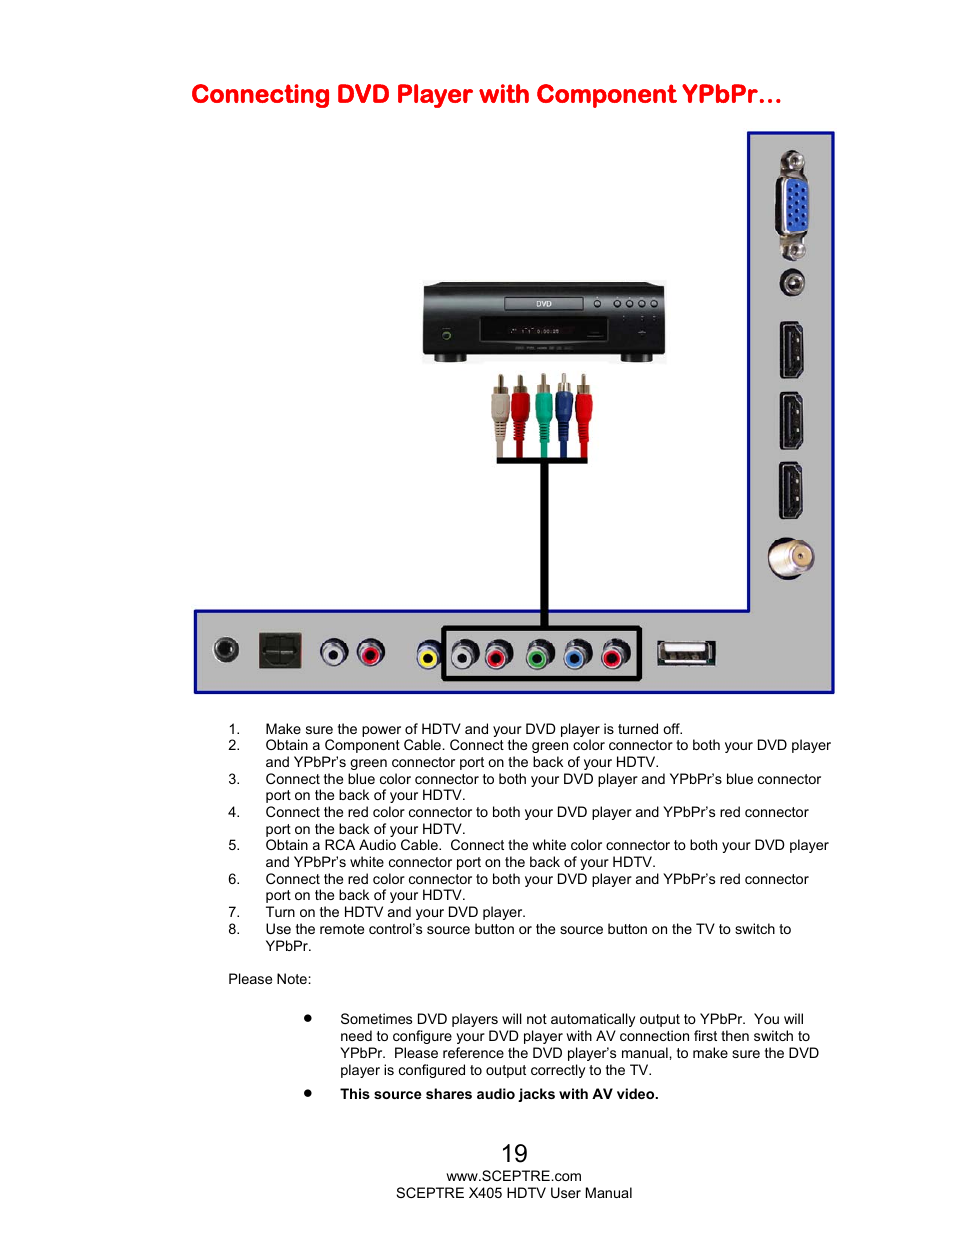 Connecting dvd player with component ypbpr | Sceptre X405BV-FMQR ...